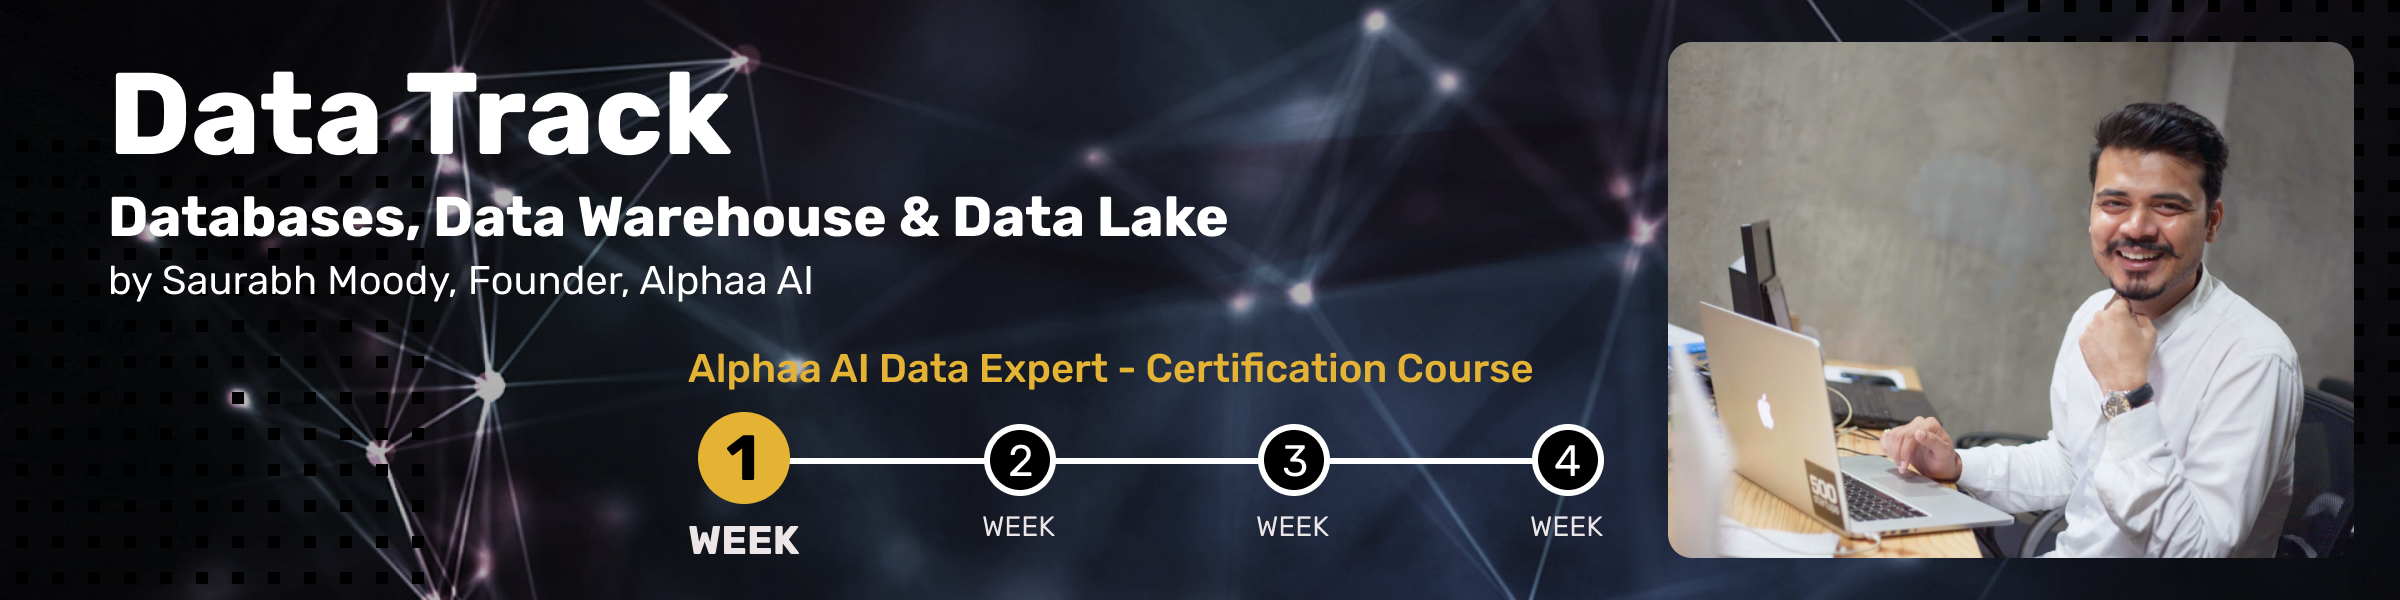 We at Alphaa AI are launching a free certification course - Alphaa AI Data Expert. This will be a four-week program for students, beginners, analysts, and everyone who wants to kickstart his/her career in Data. Good part, you don't need to have any prior knowledge of data or programming languages.